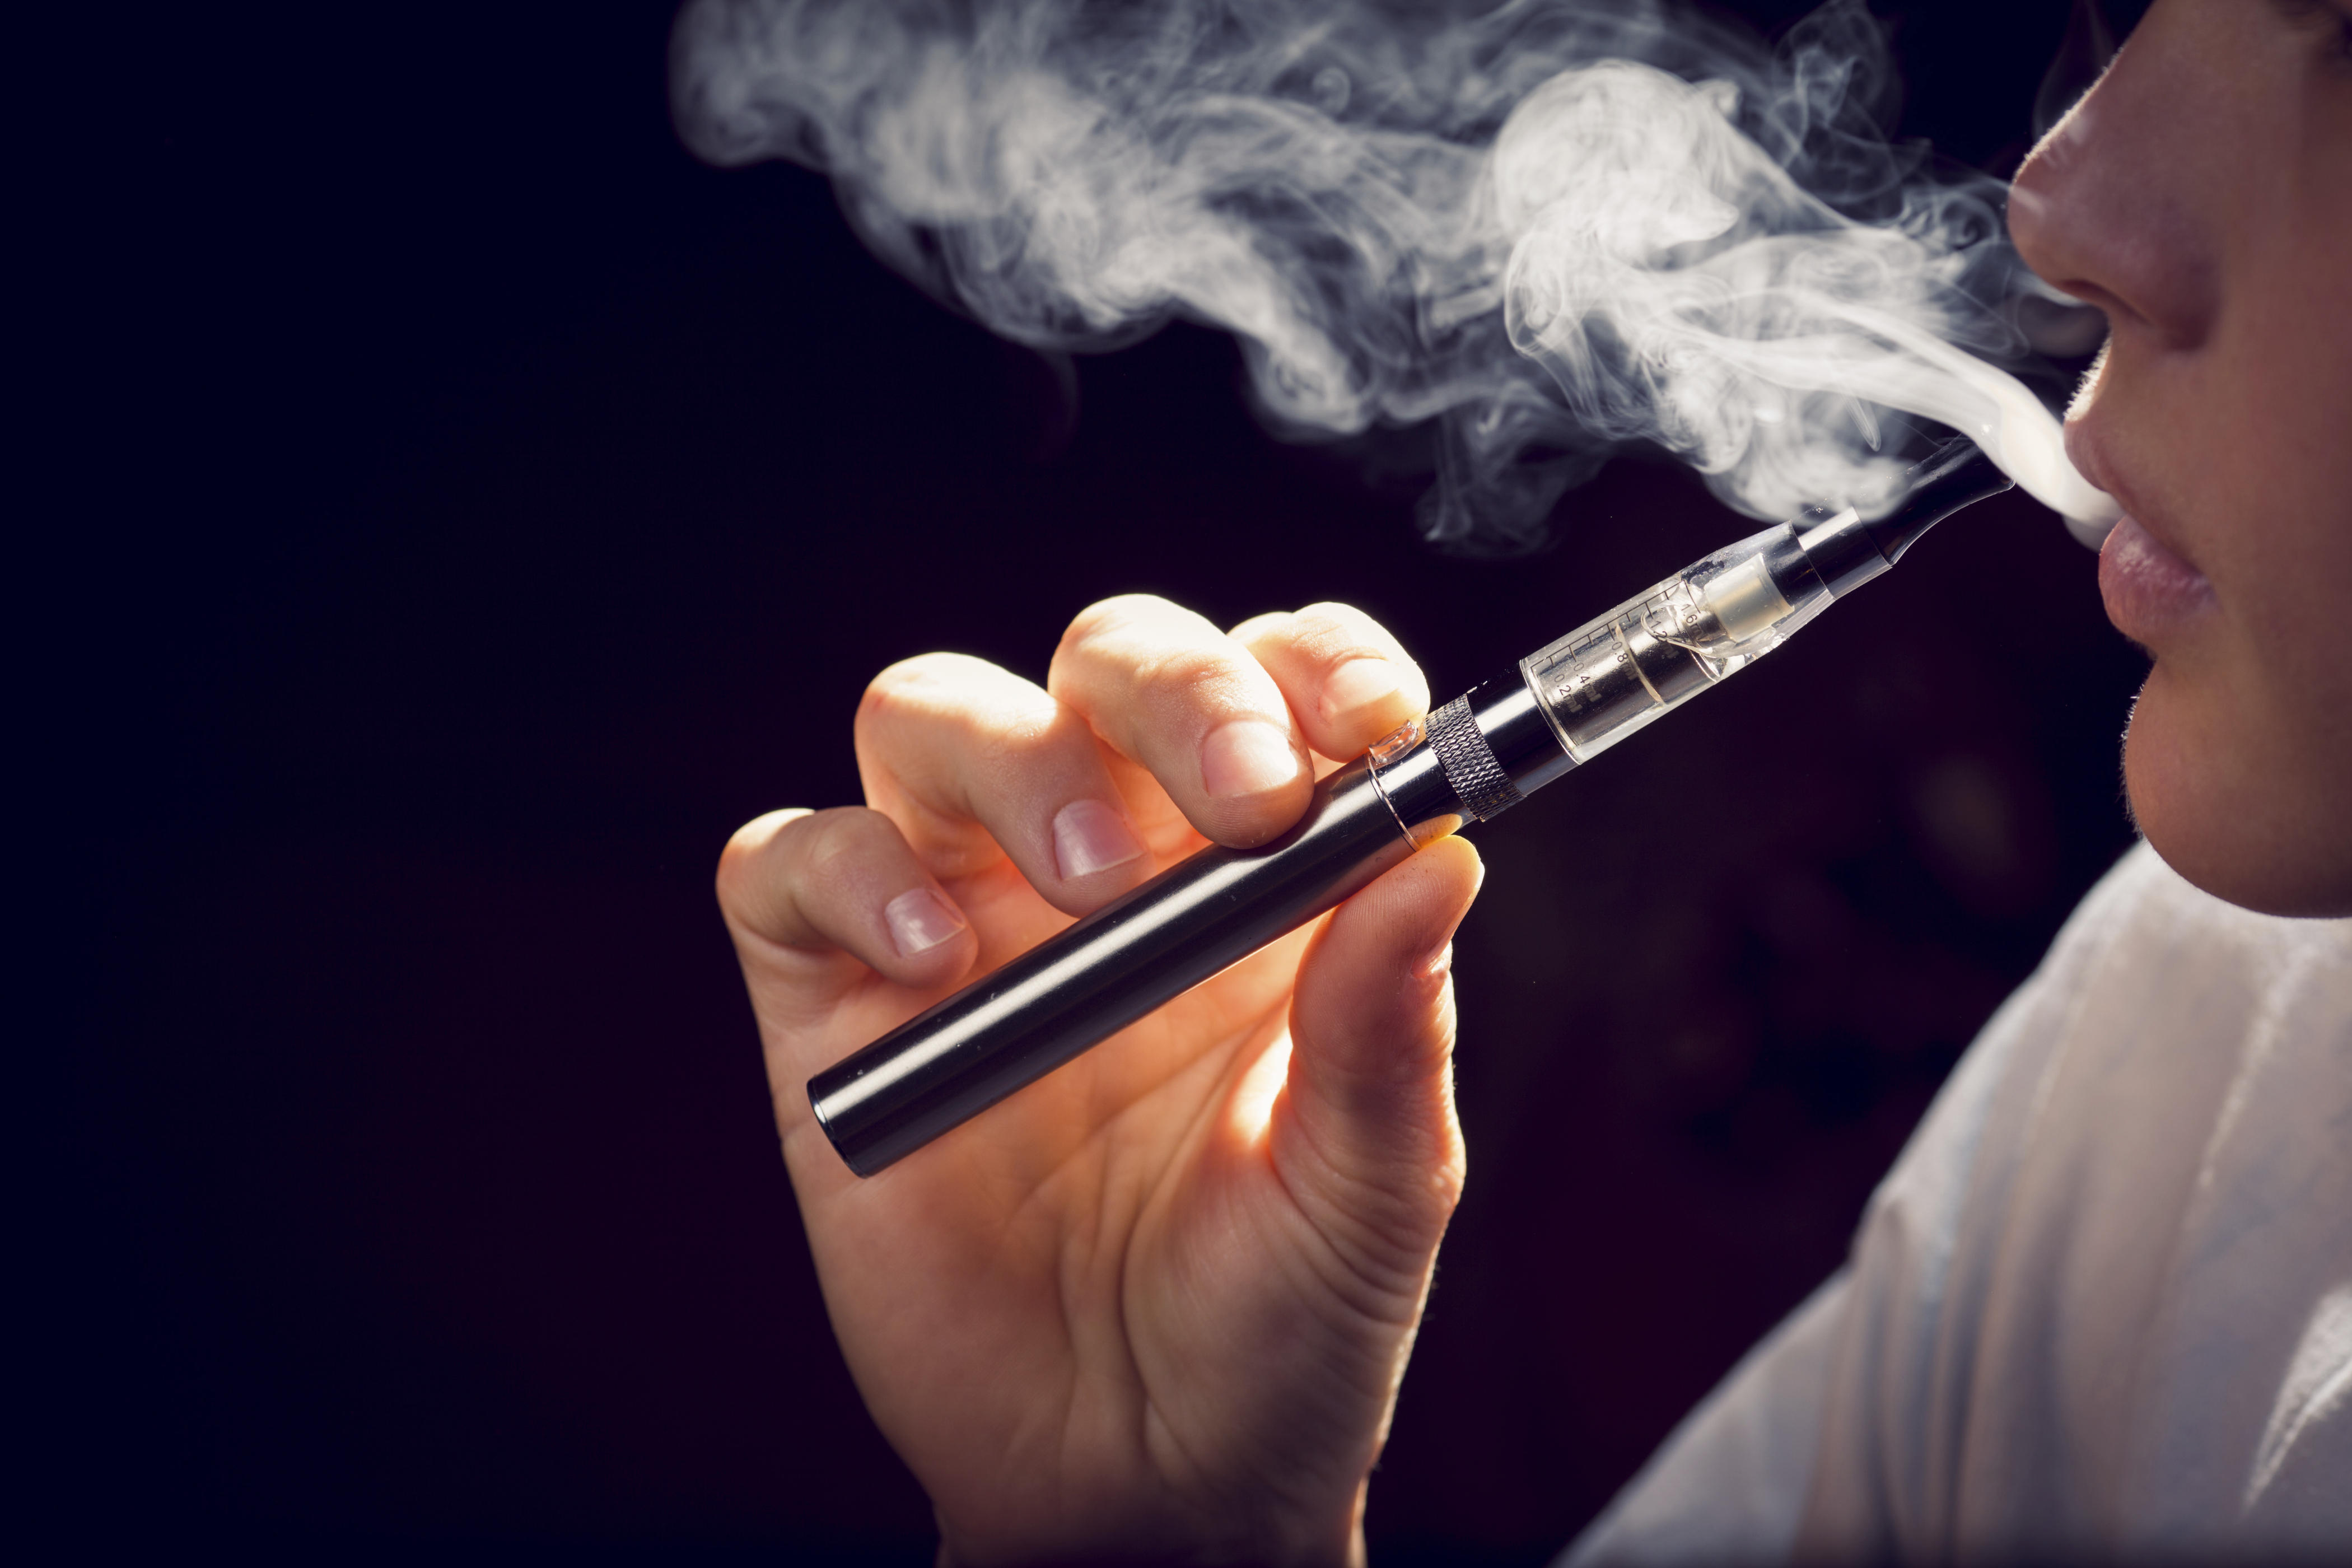 Are e-cigarettes safer than tobacco? New study fires up debate - CBS